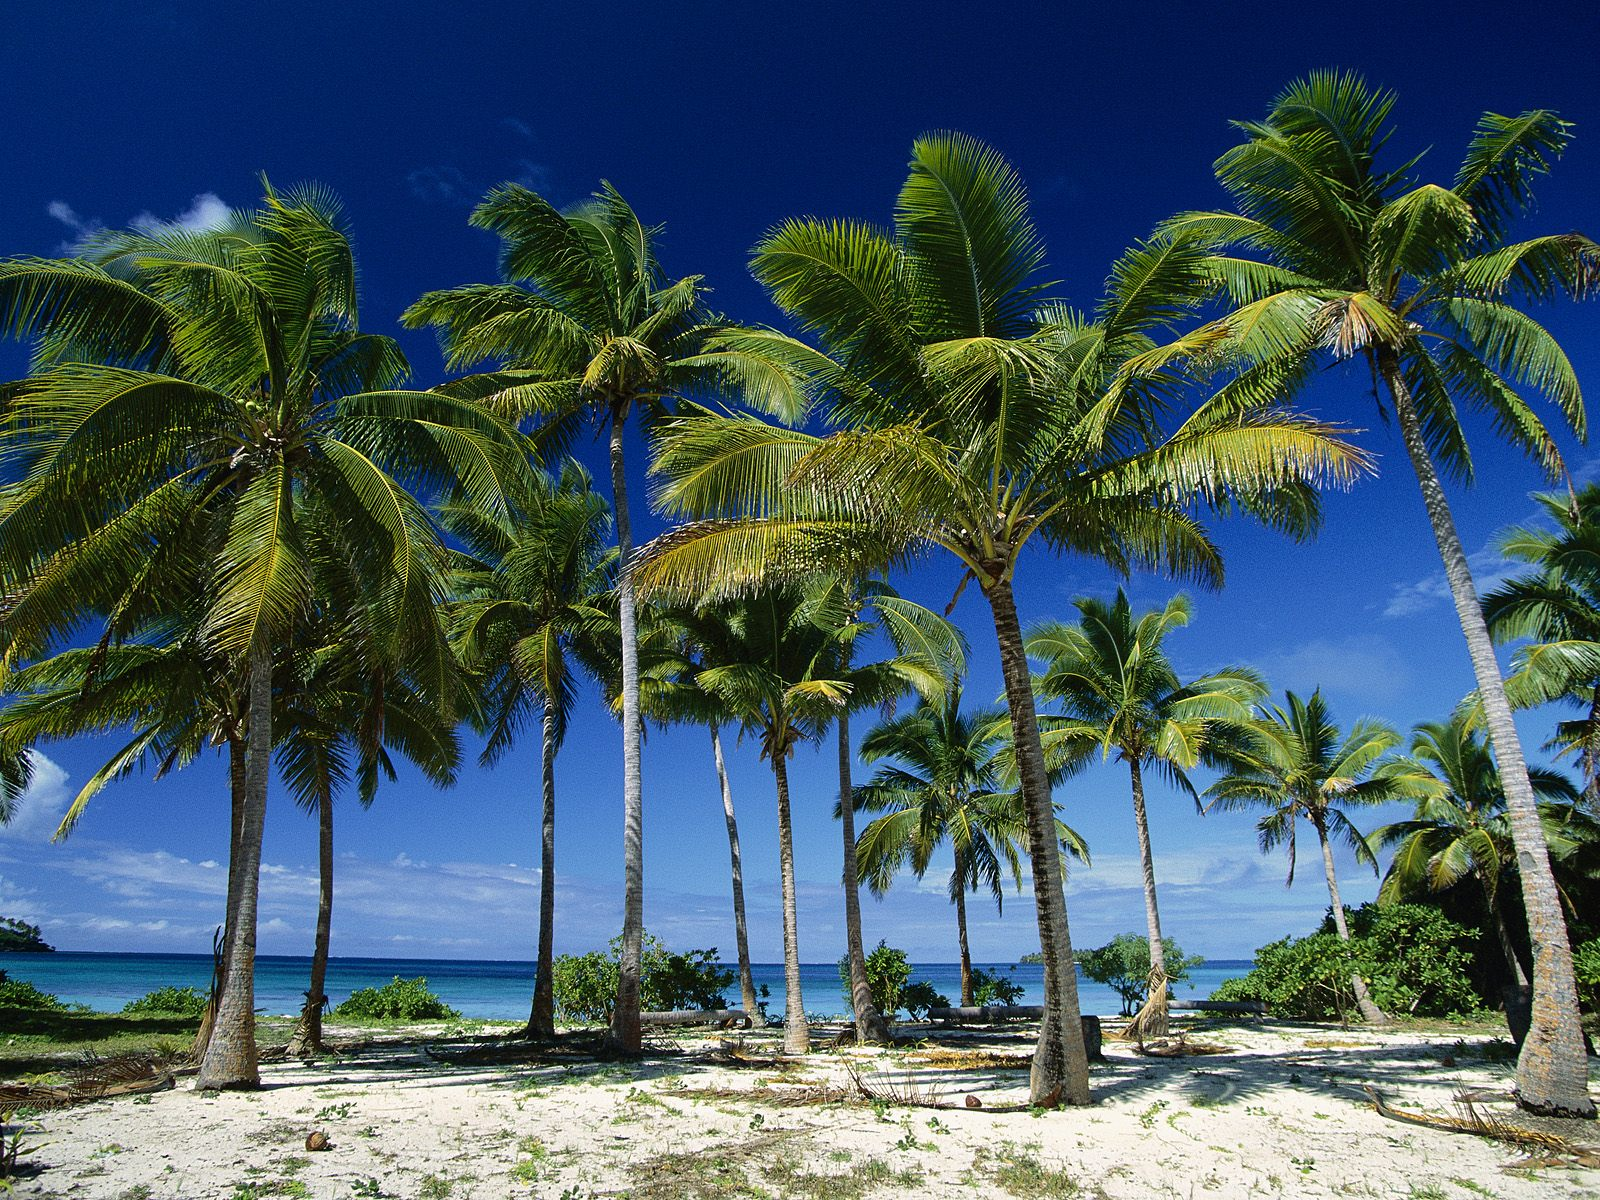 155894-coconut-palm-tree-island